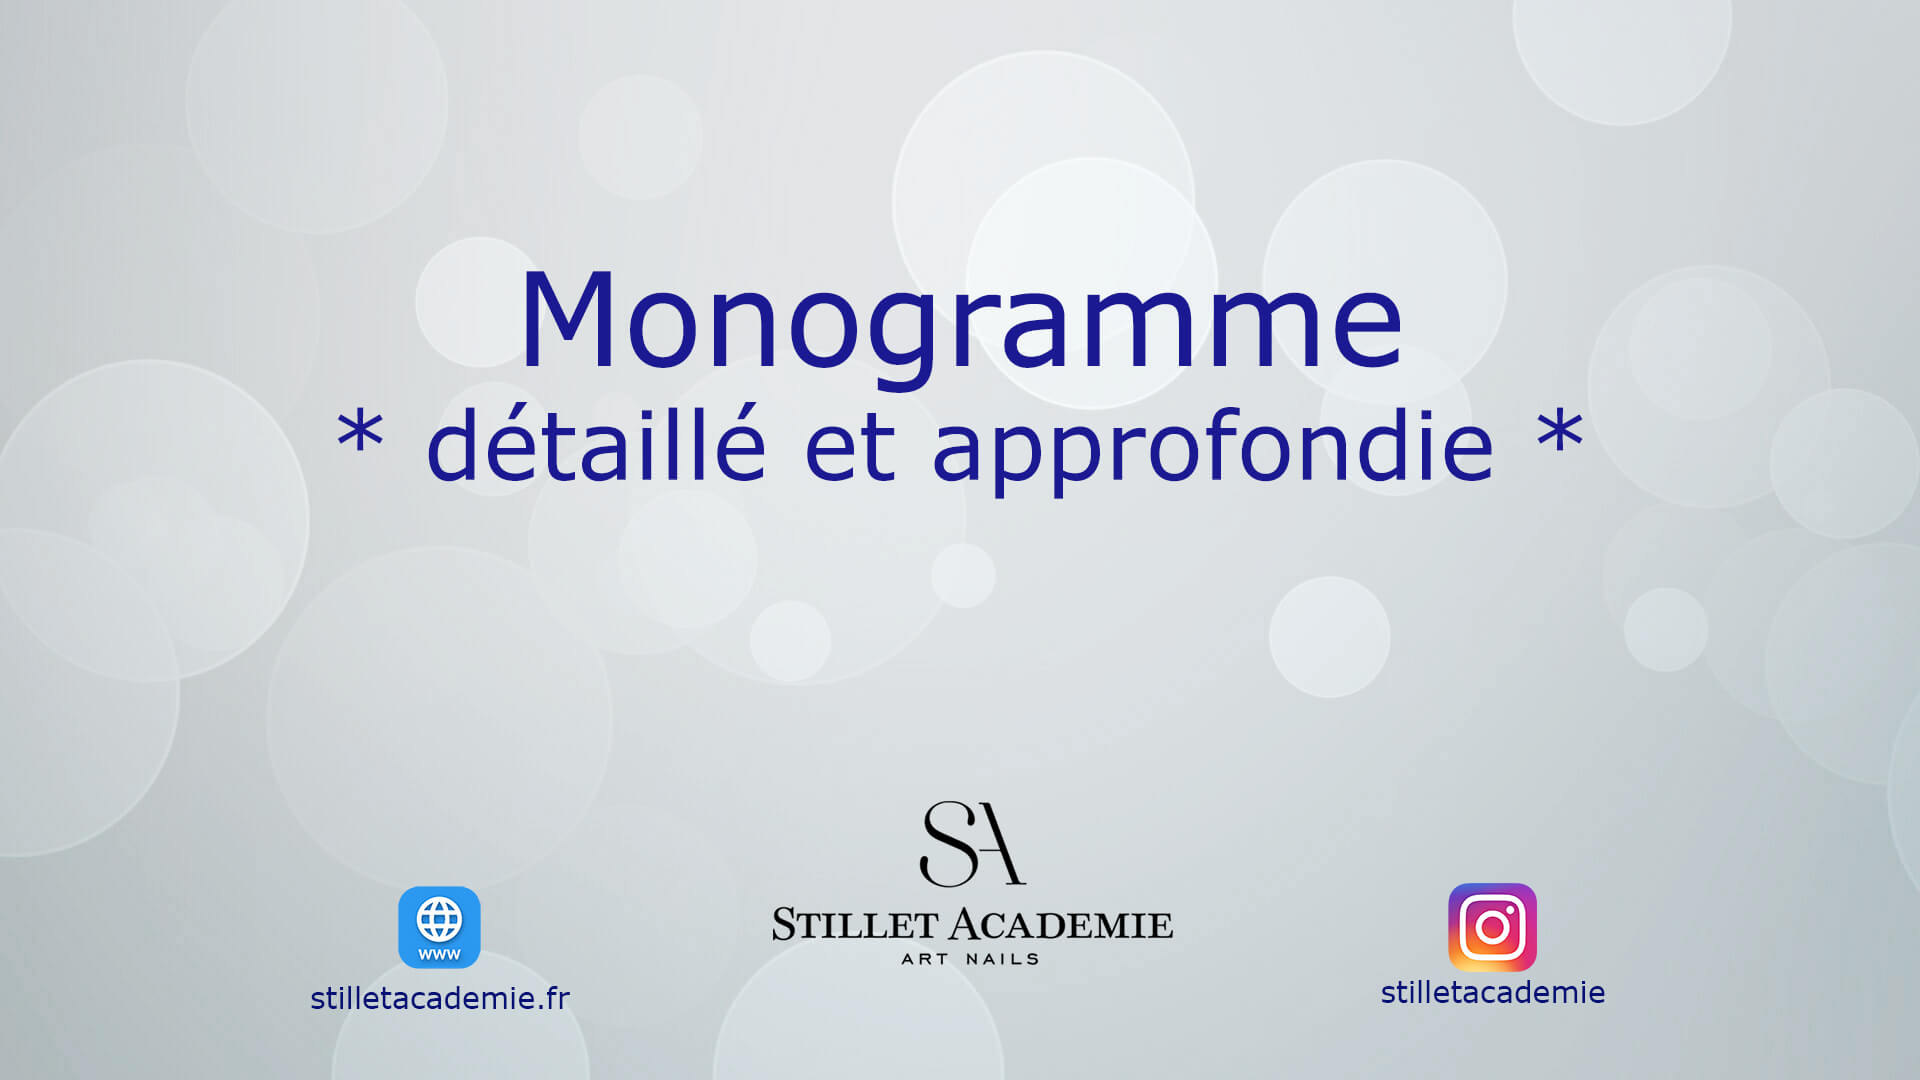 formation ongles en ligne gratuit par Stillet Academie Video Monogramme